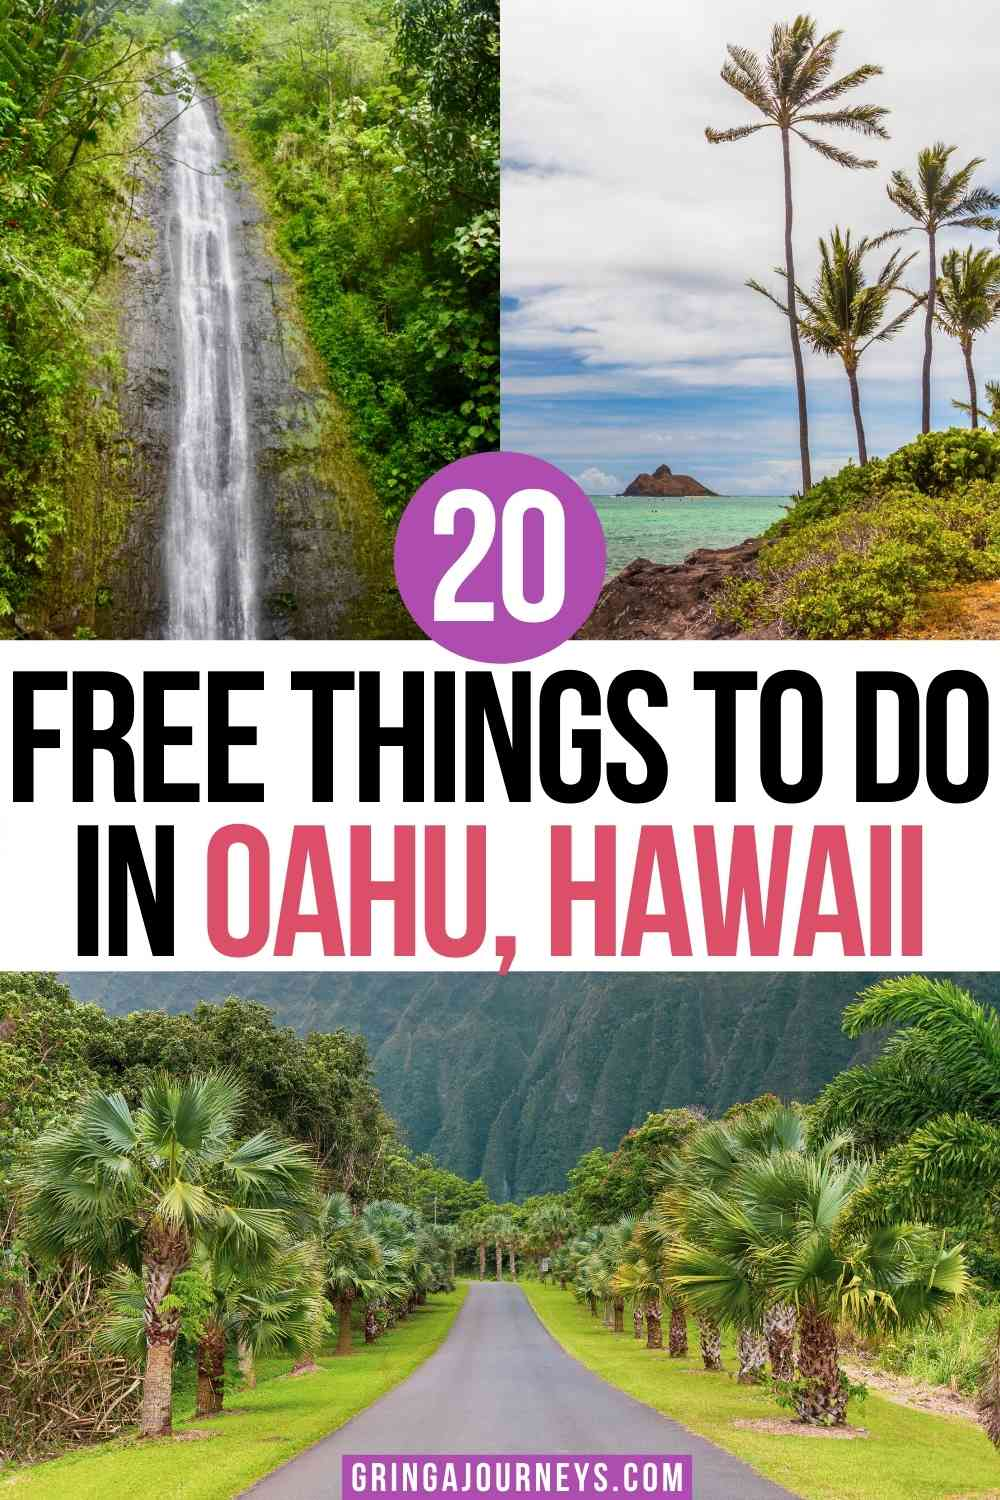 Discover 20 free things to do in Oahu, Hawaii, including free activities in Honolulu, on the North Shore, and on the Windward Coast. | free things to do in oahu 2021 | free things to do north shore oahu | free things to do in honolulu at night | things to do in honolulu for free | things to do in oahu for free | free things to do in Waikiki | cheap things to do in oahu | best free things in oahu